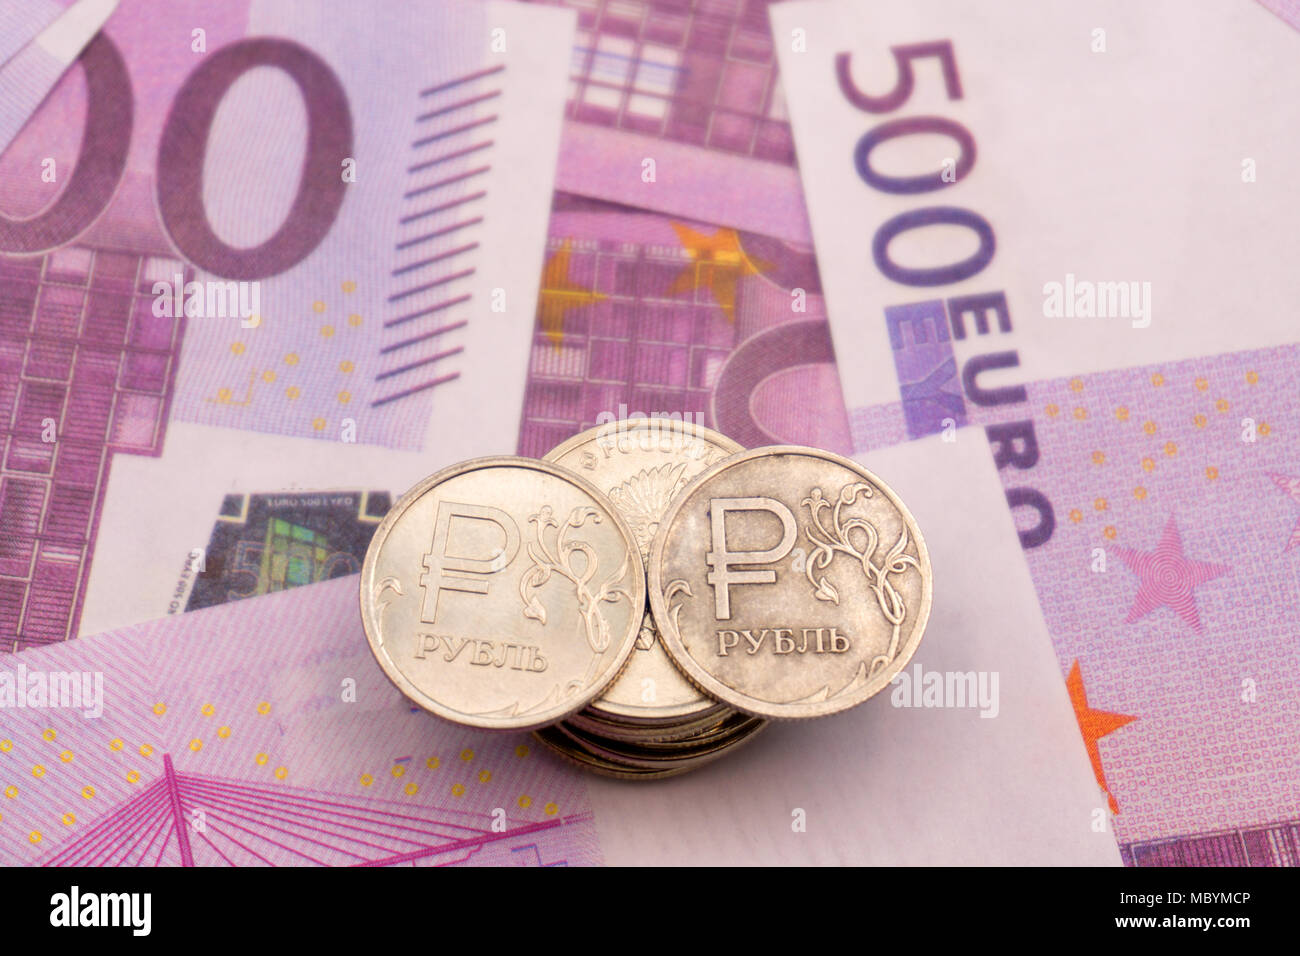 ruble coins and the symbol of the ruble and the numbers on Euro notes - Stock Image